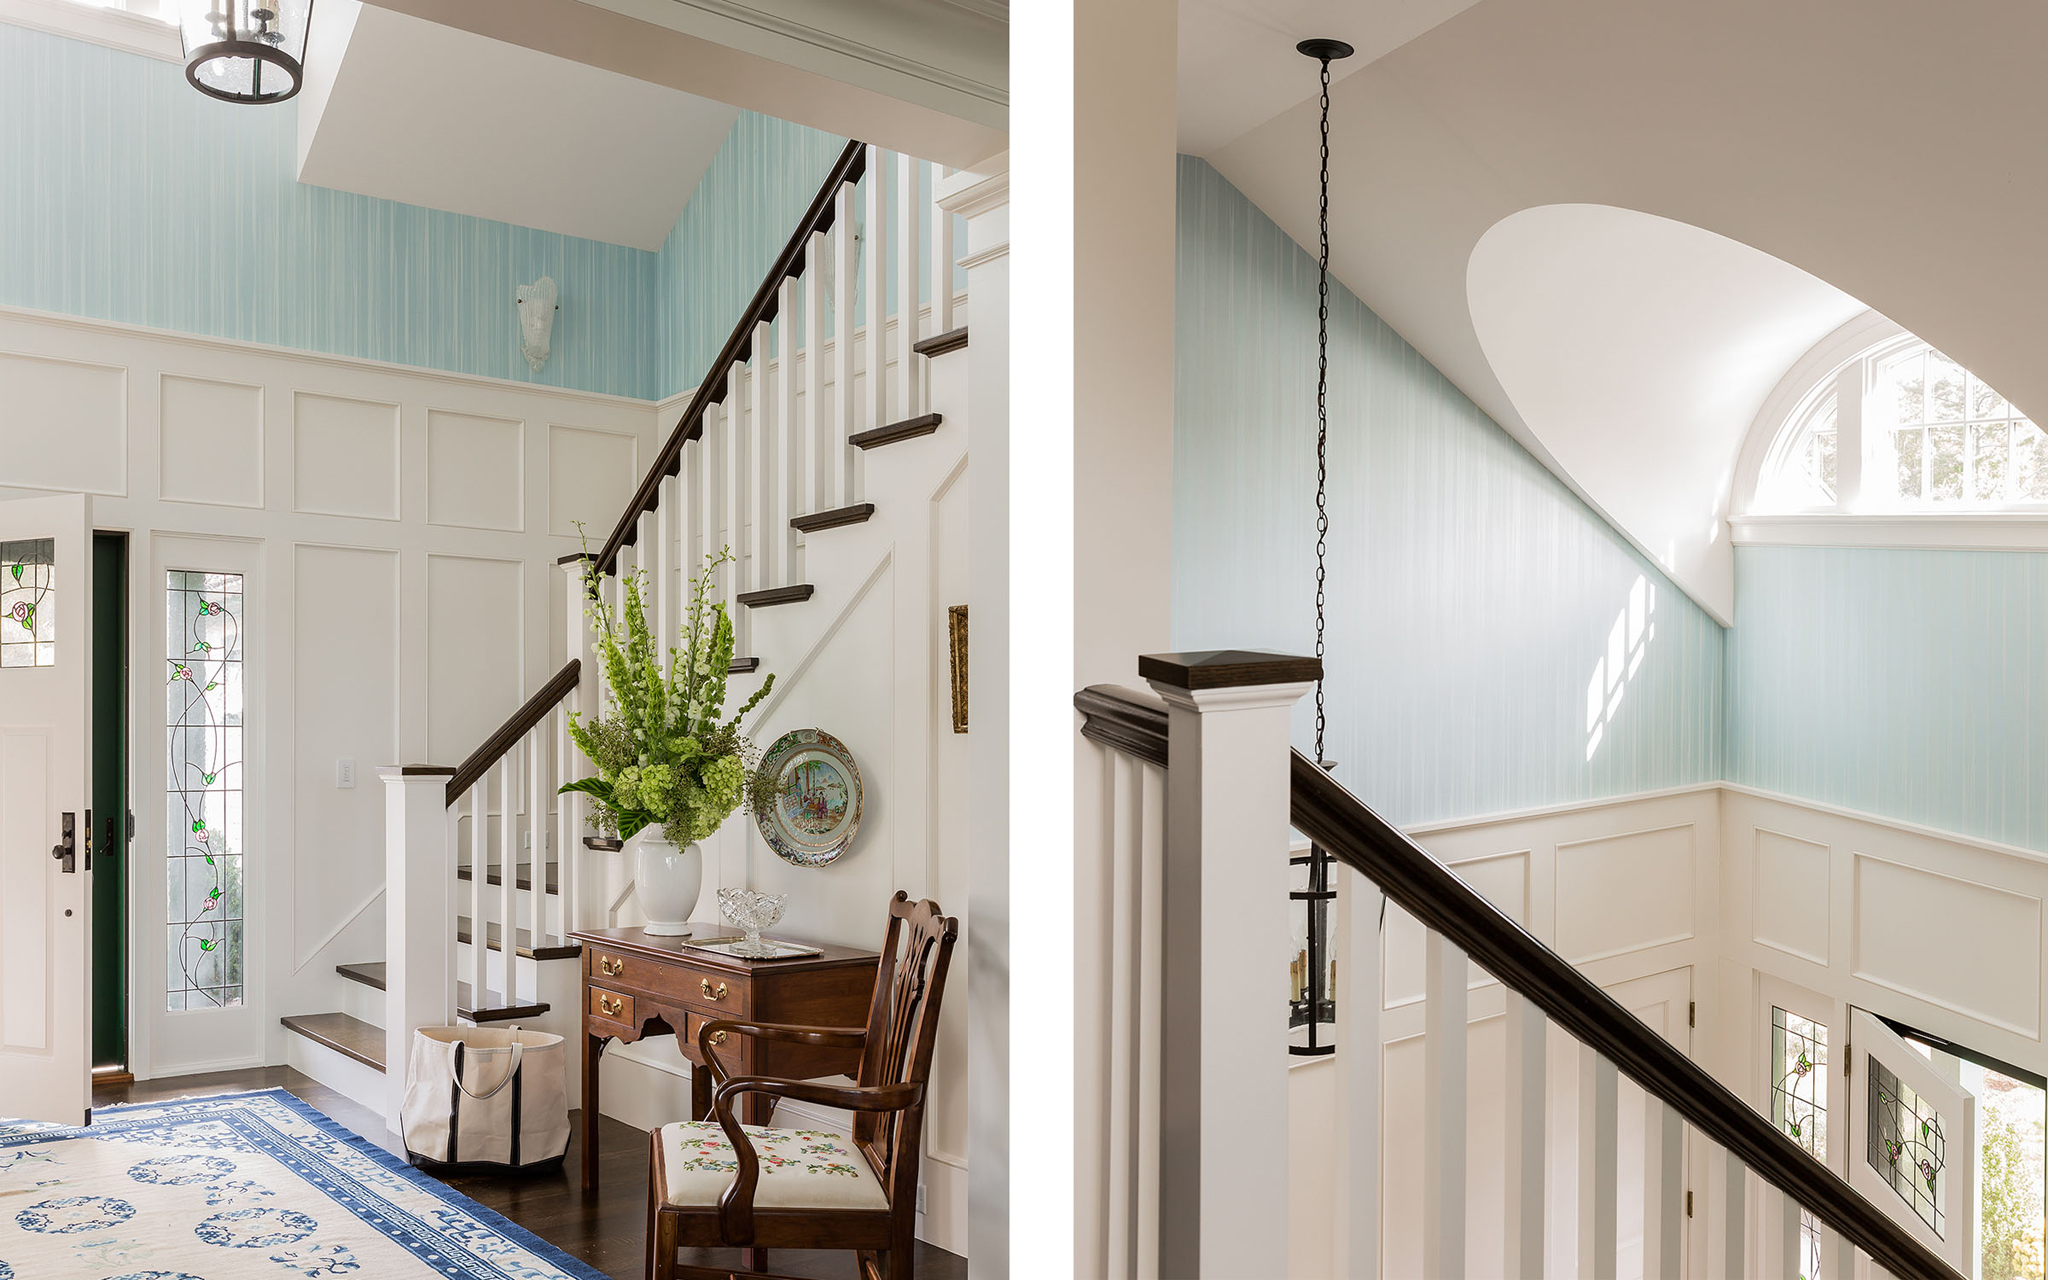 Before & After: A Seaside Residential Renovation 7